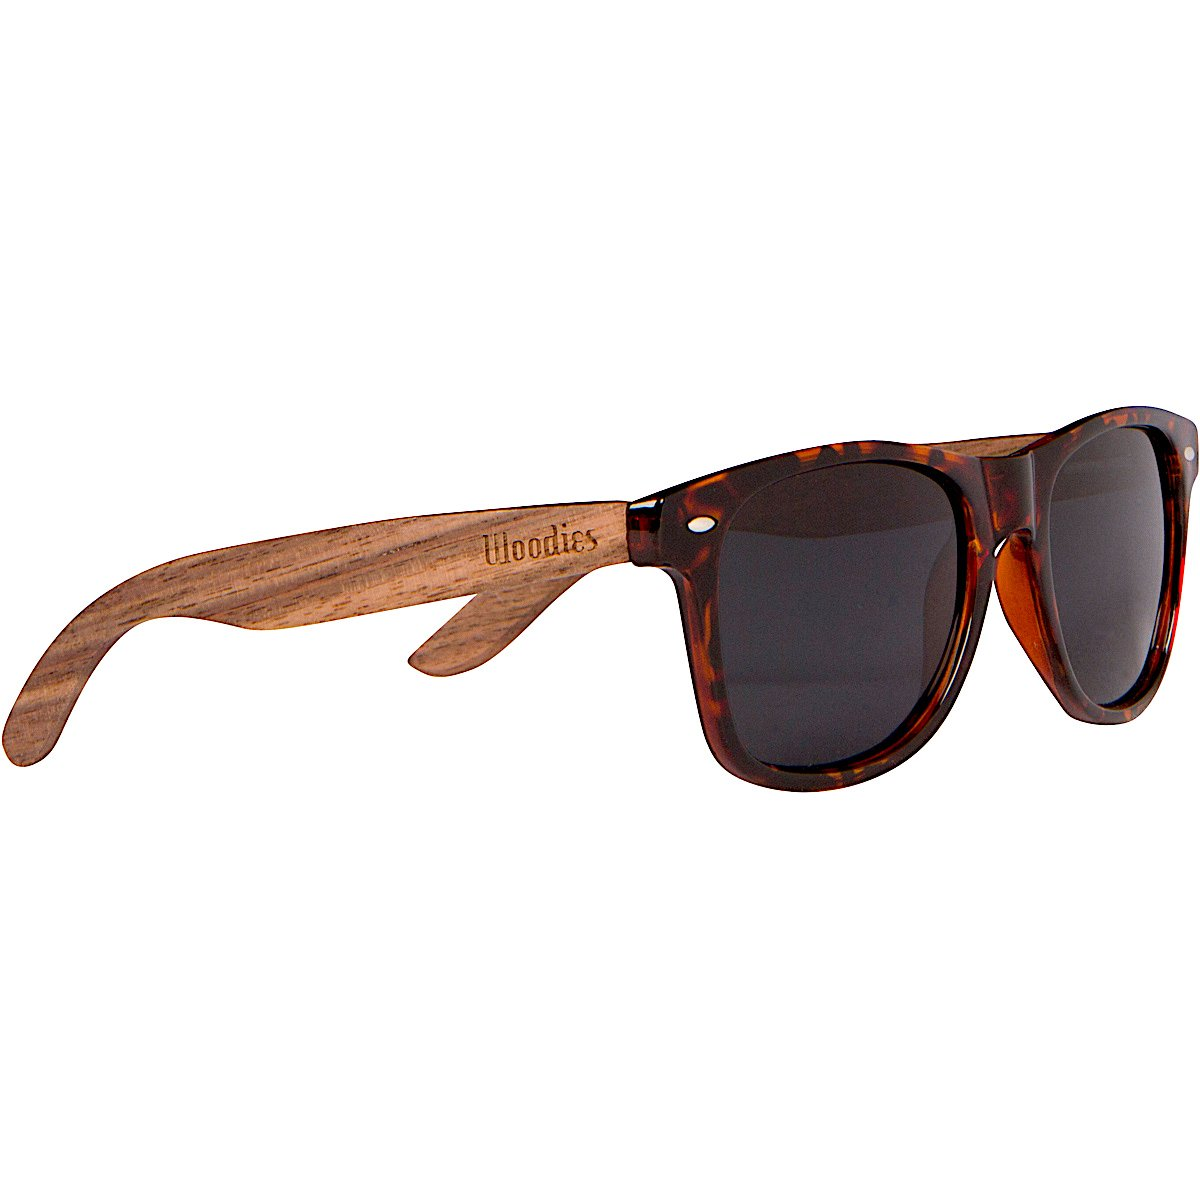 WOODIES Walnut Wood Sunglasses with Tortoise Shell Frame by Woodies